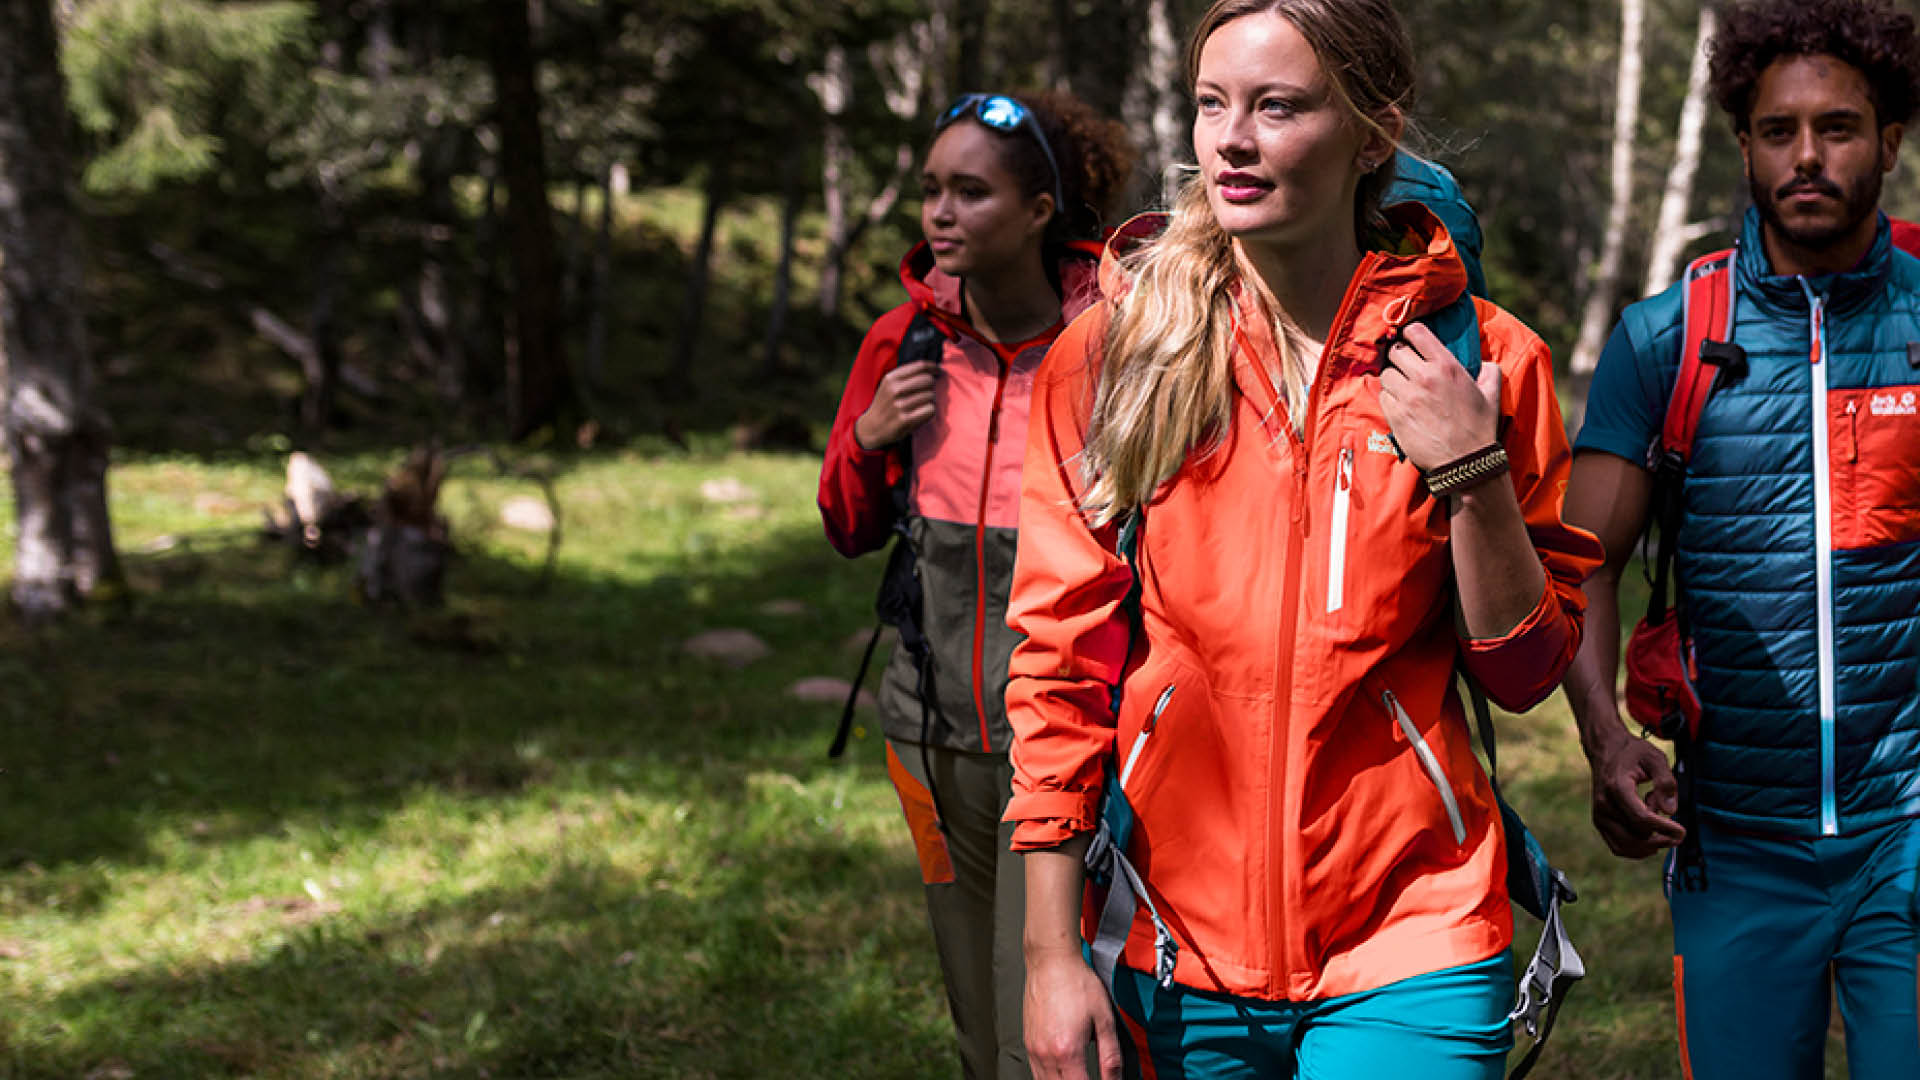 Woman and Men are wearing Jack Wolfskin Backpack and Jacket in ornage and blue